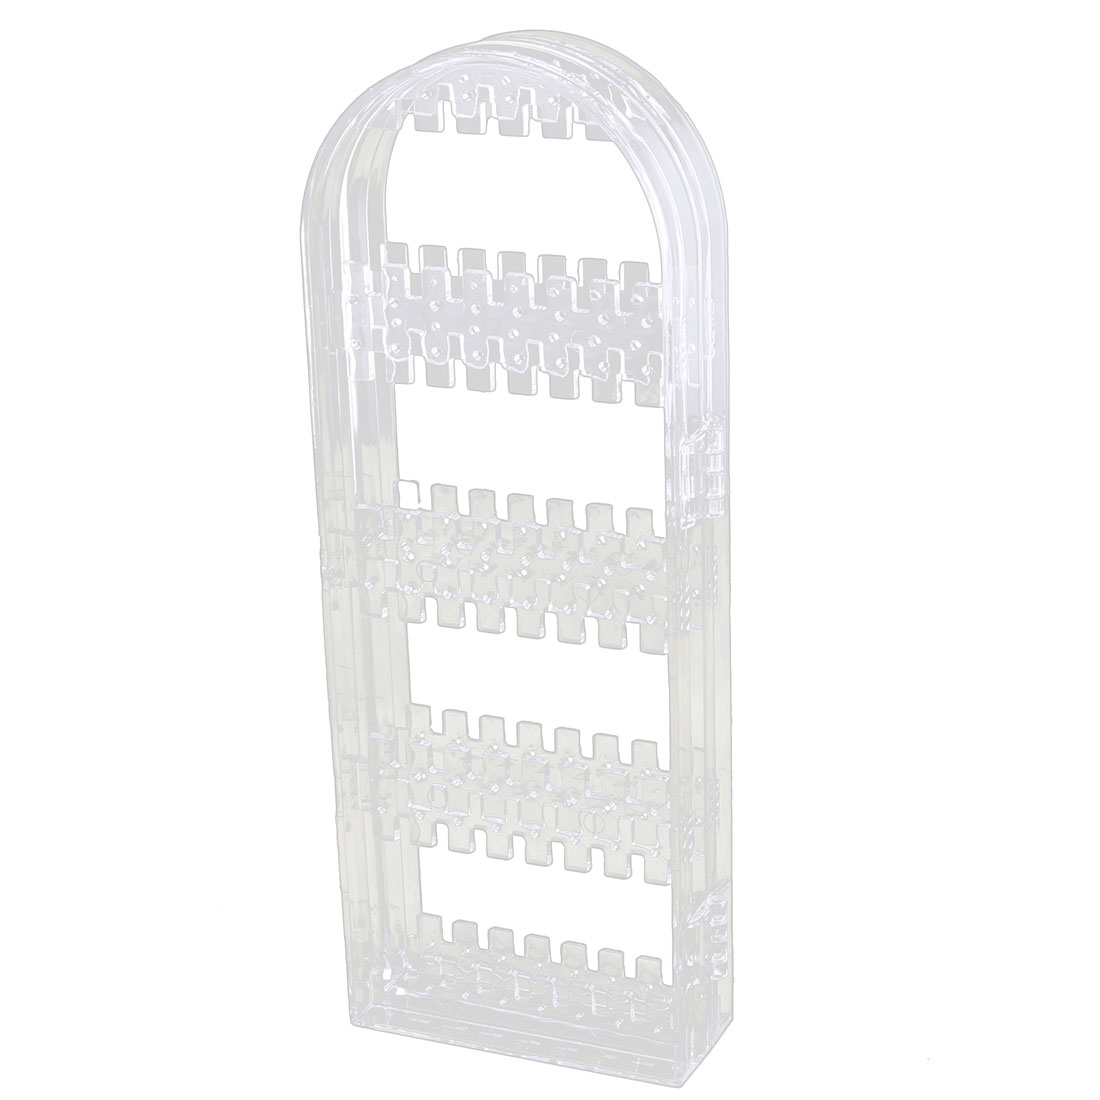 Acrylic Foldable Earring Screen Necklace Jewelry Display Rack Holder Clear